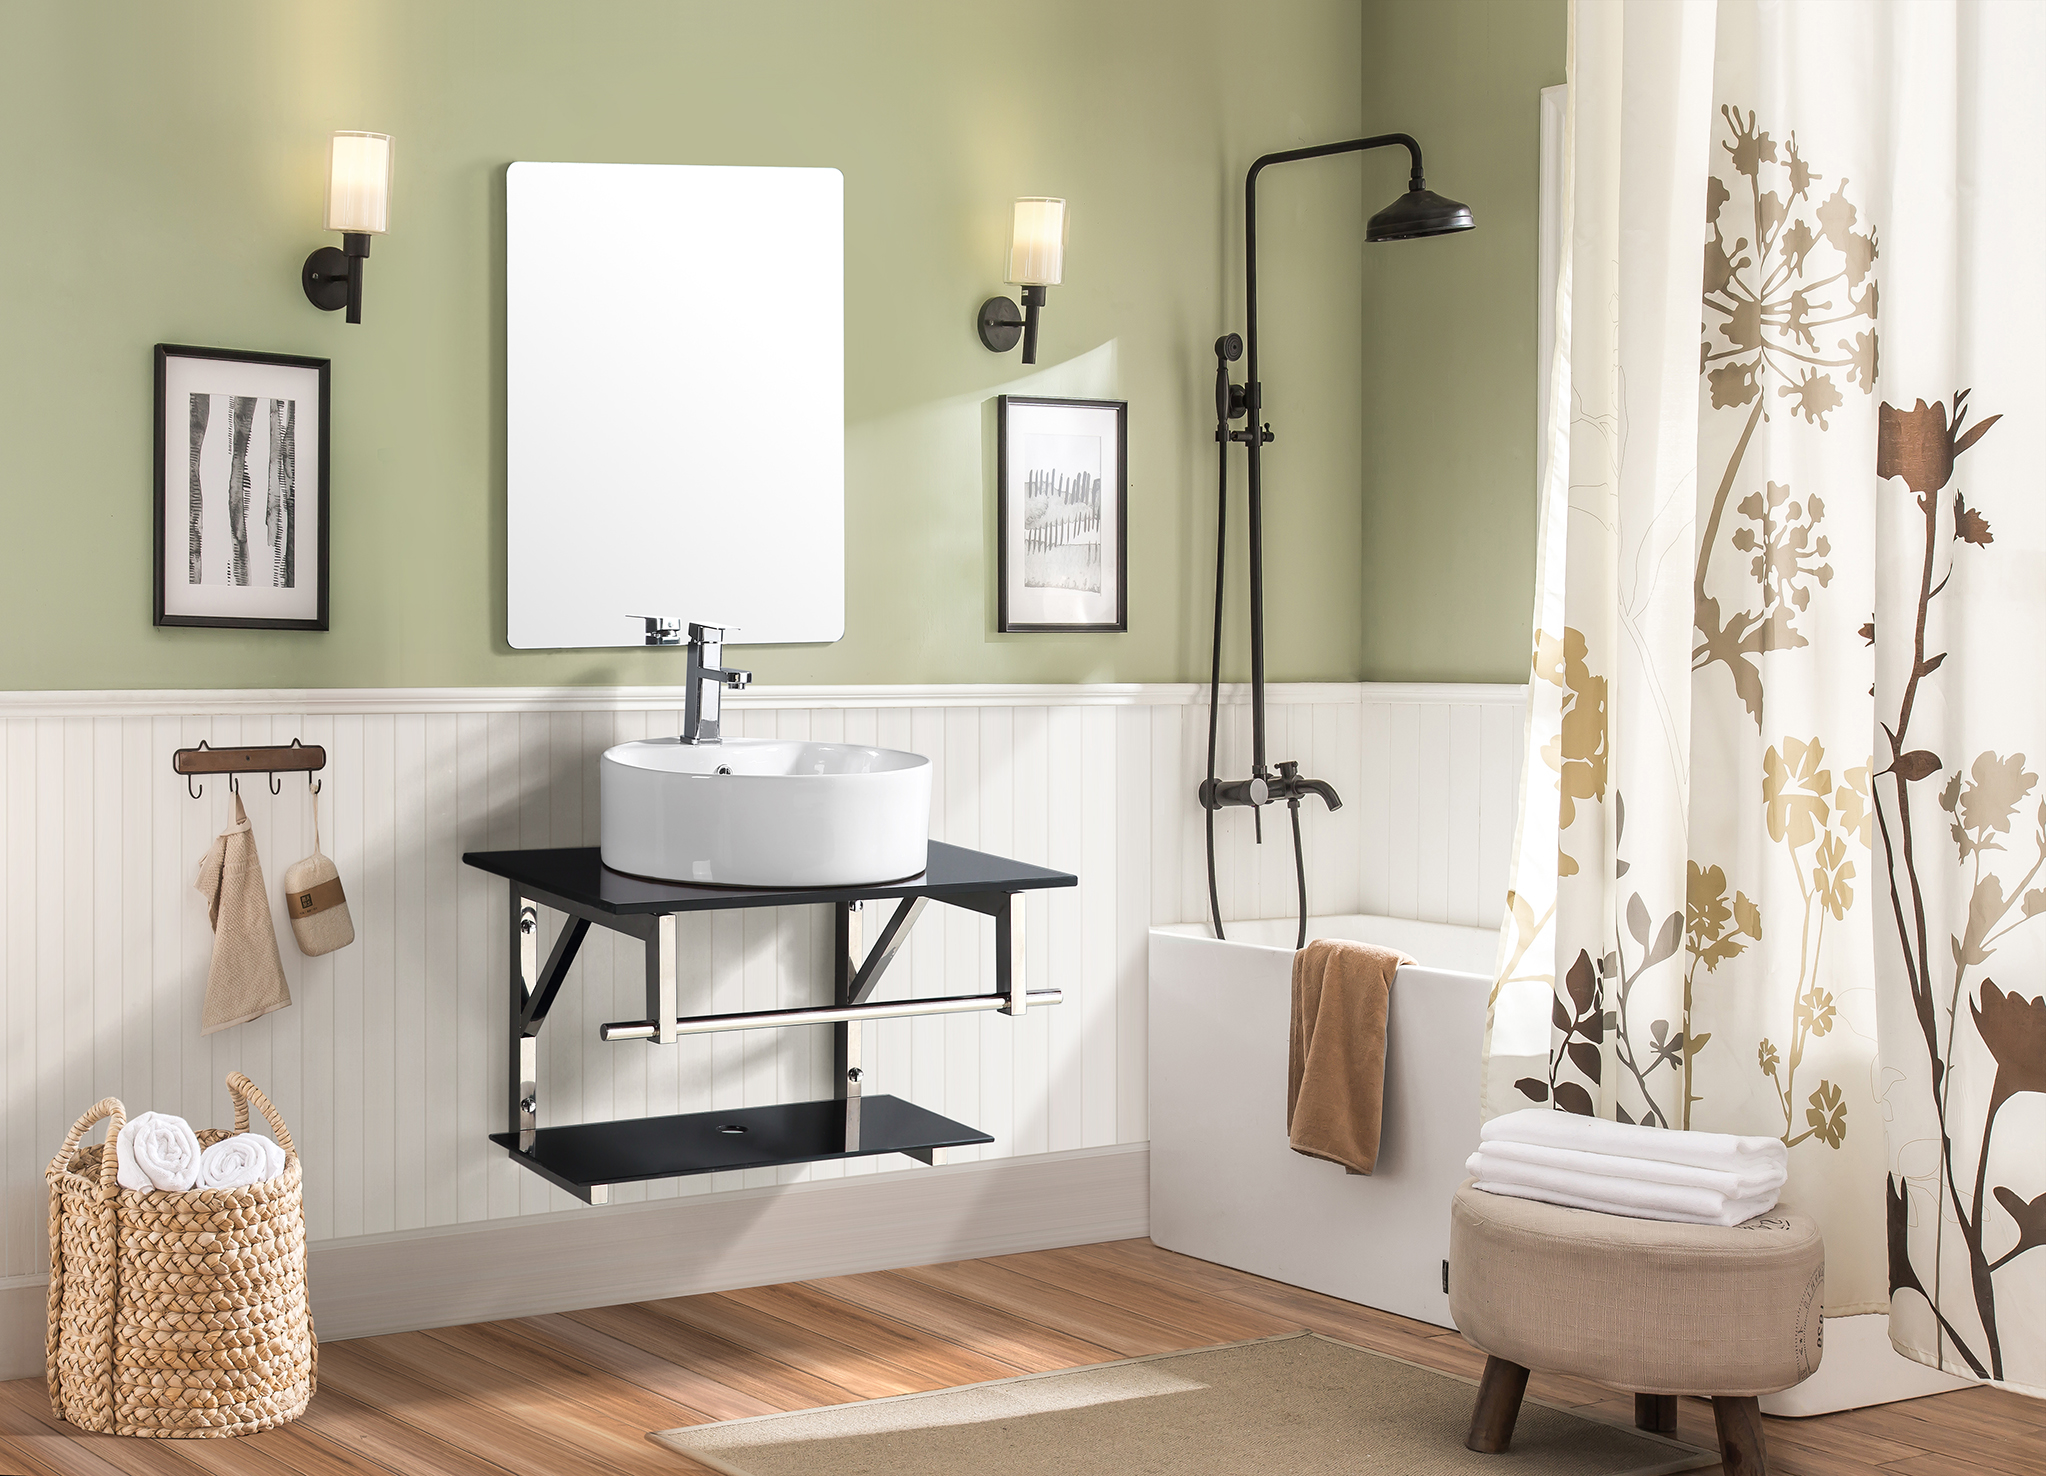 Evea Bath Vanity in Black & White Colour by HomeTown